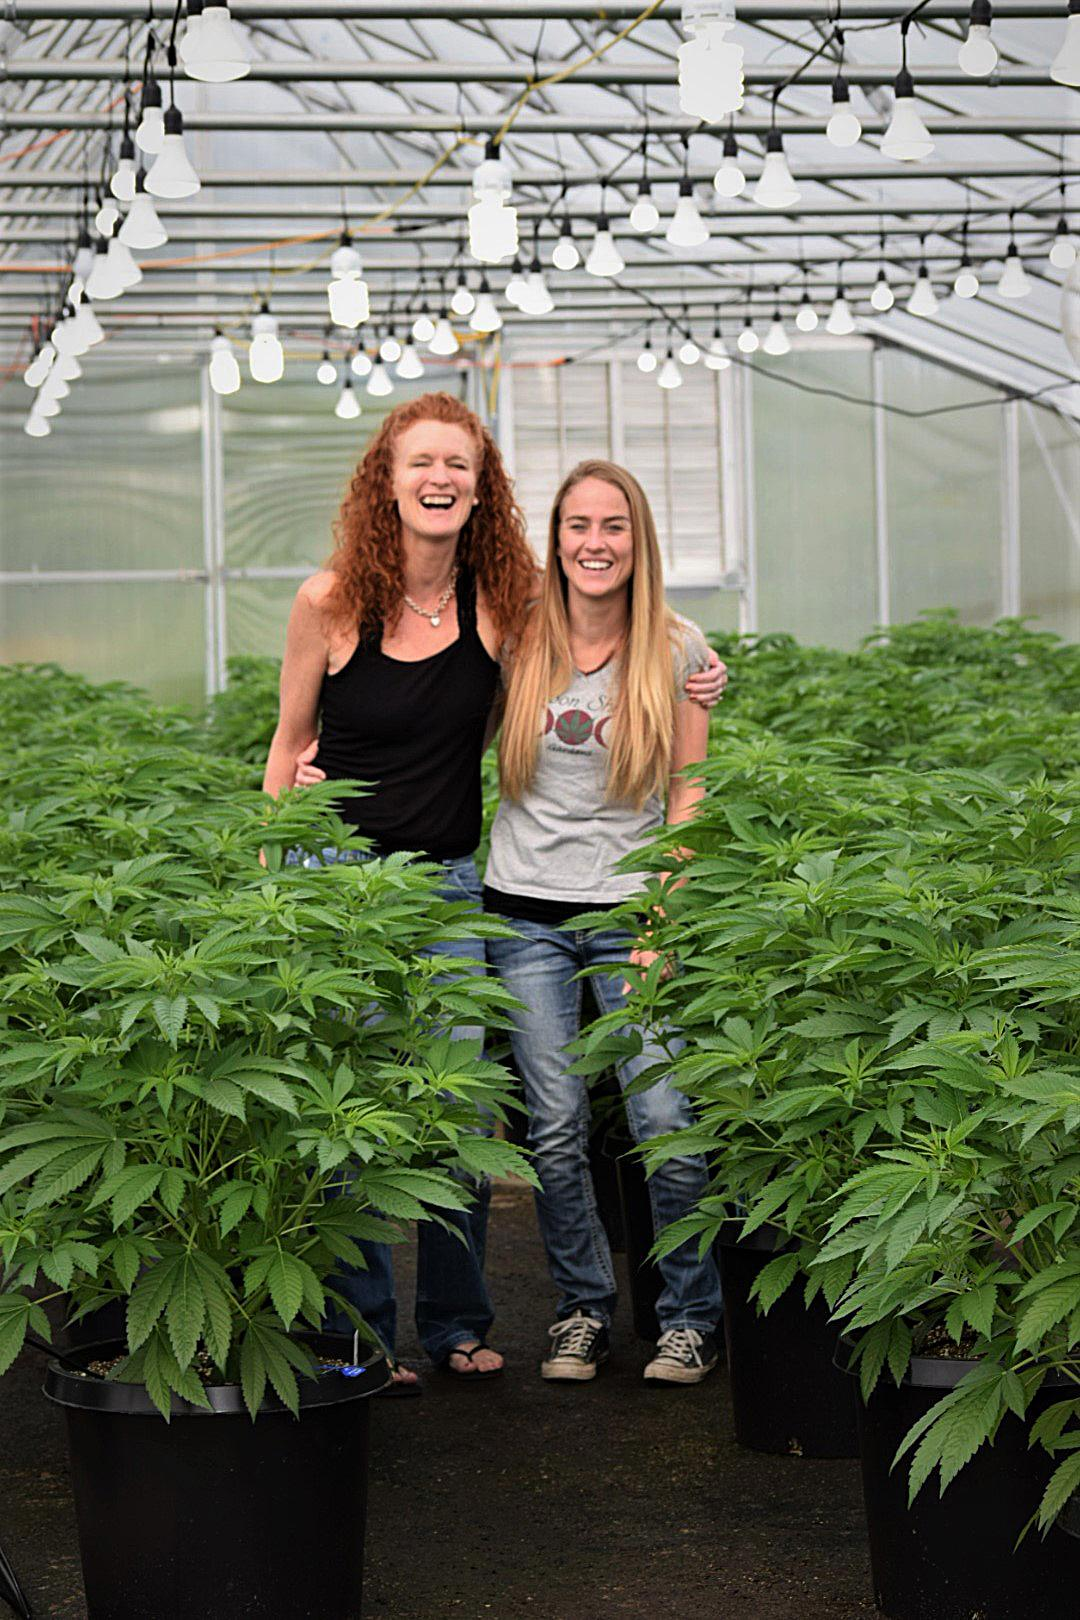 Valerie Montague, left, and Kristine Miller, owners of Moon Shine Gardens in Josephine County. (Photo Courtesy of Moon Shine Gardens)